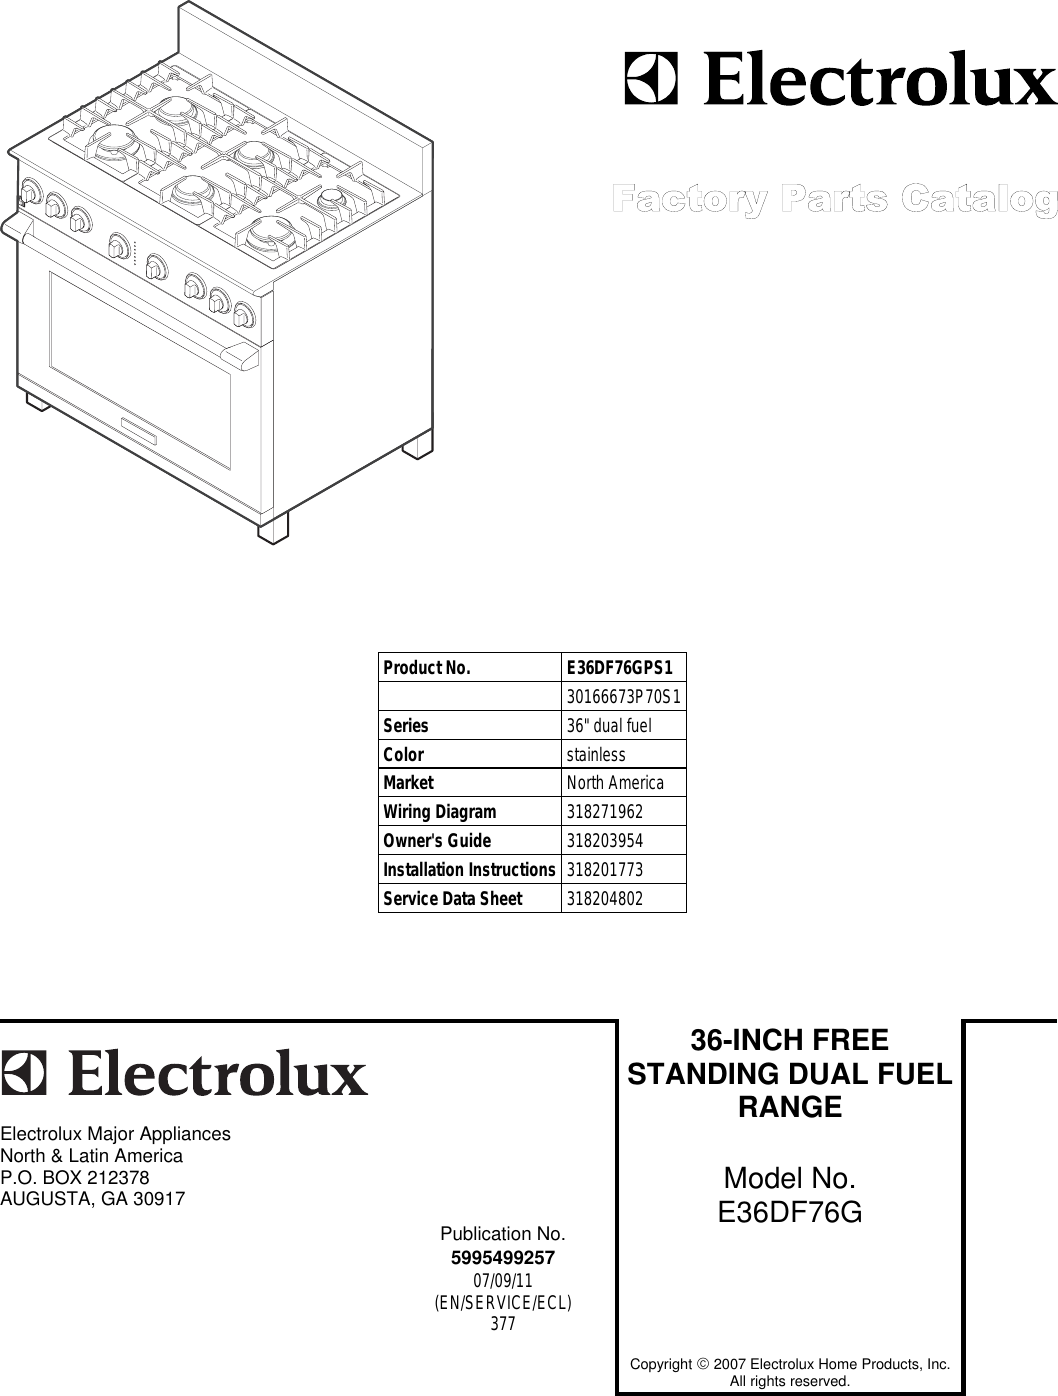 Electrolux 30166673p70s1 Users Manual 5995499257 Dual Fuel Wiring Diagram